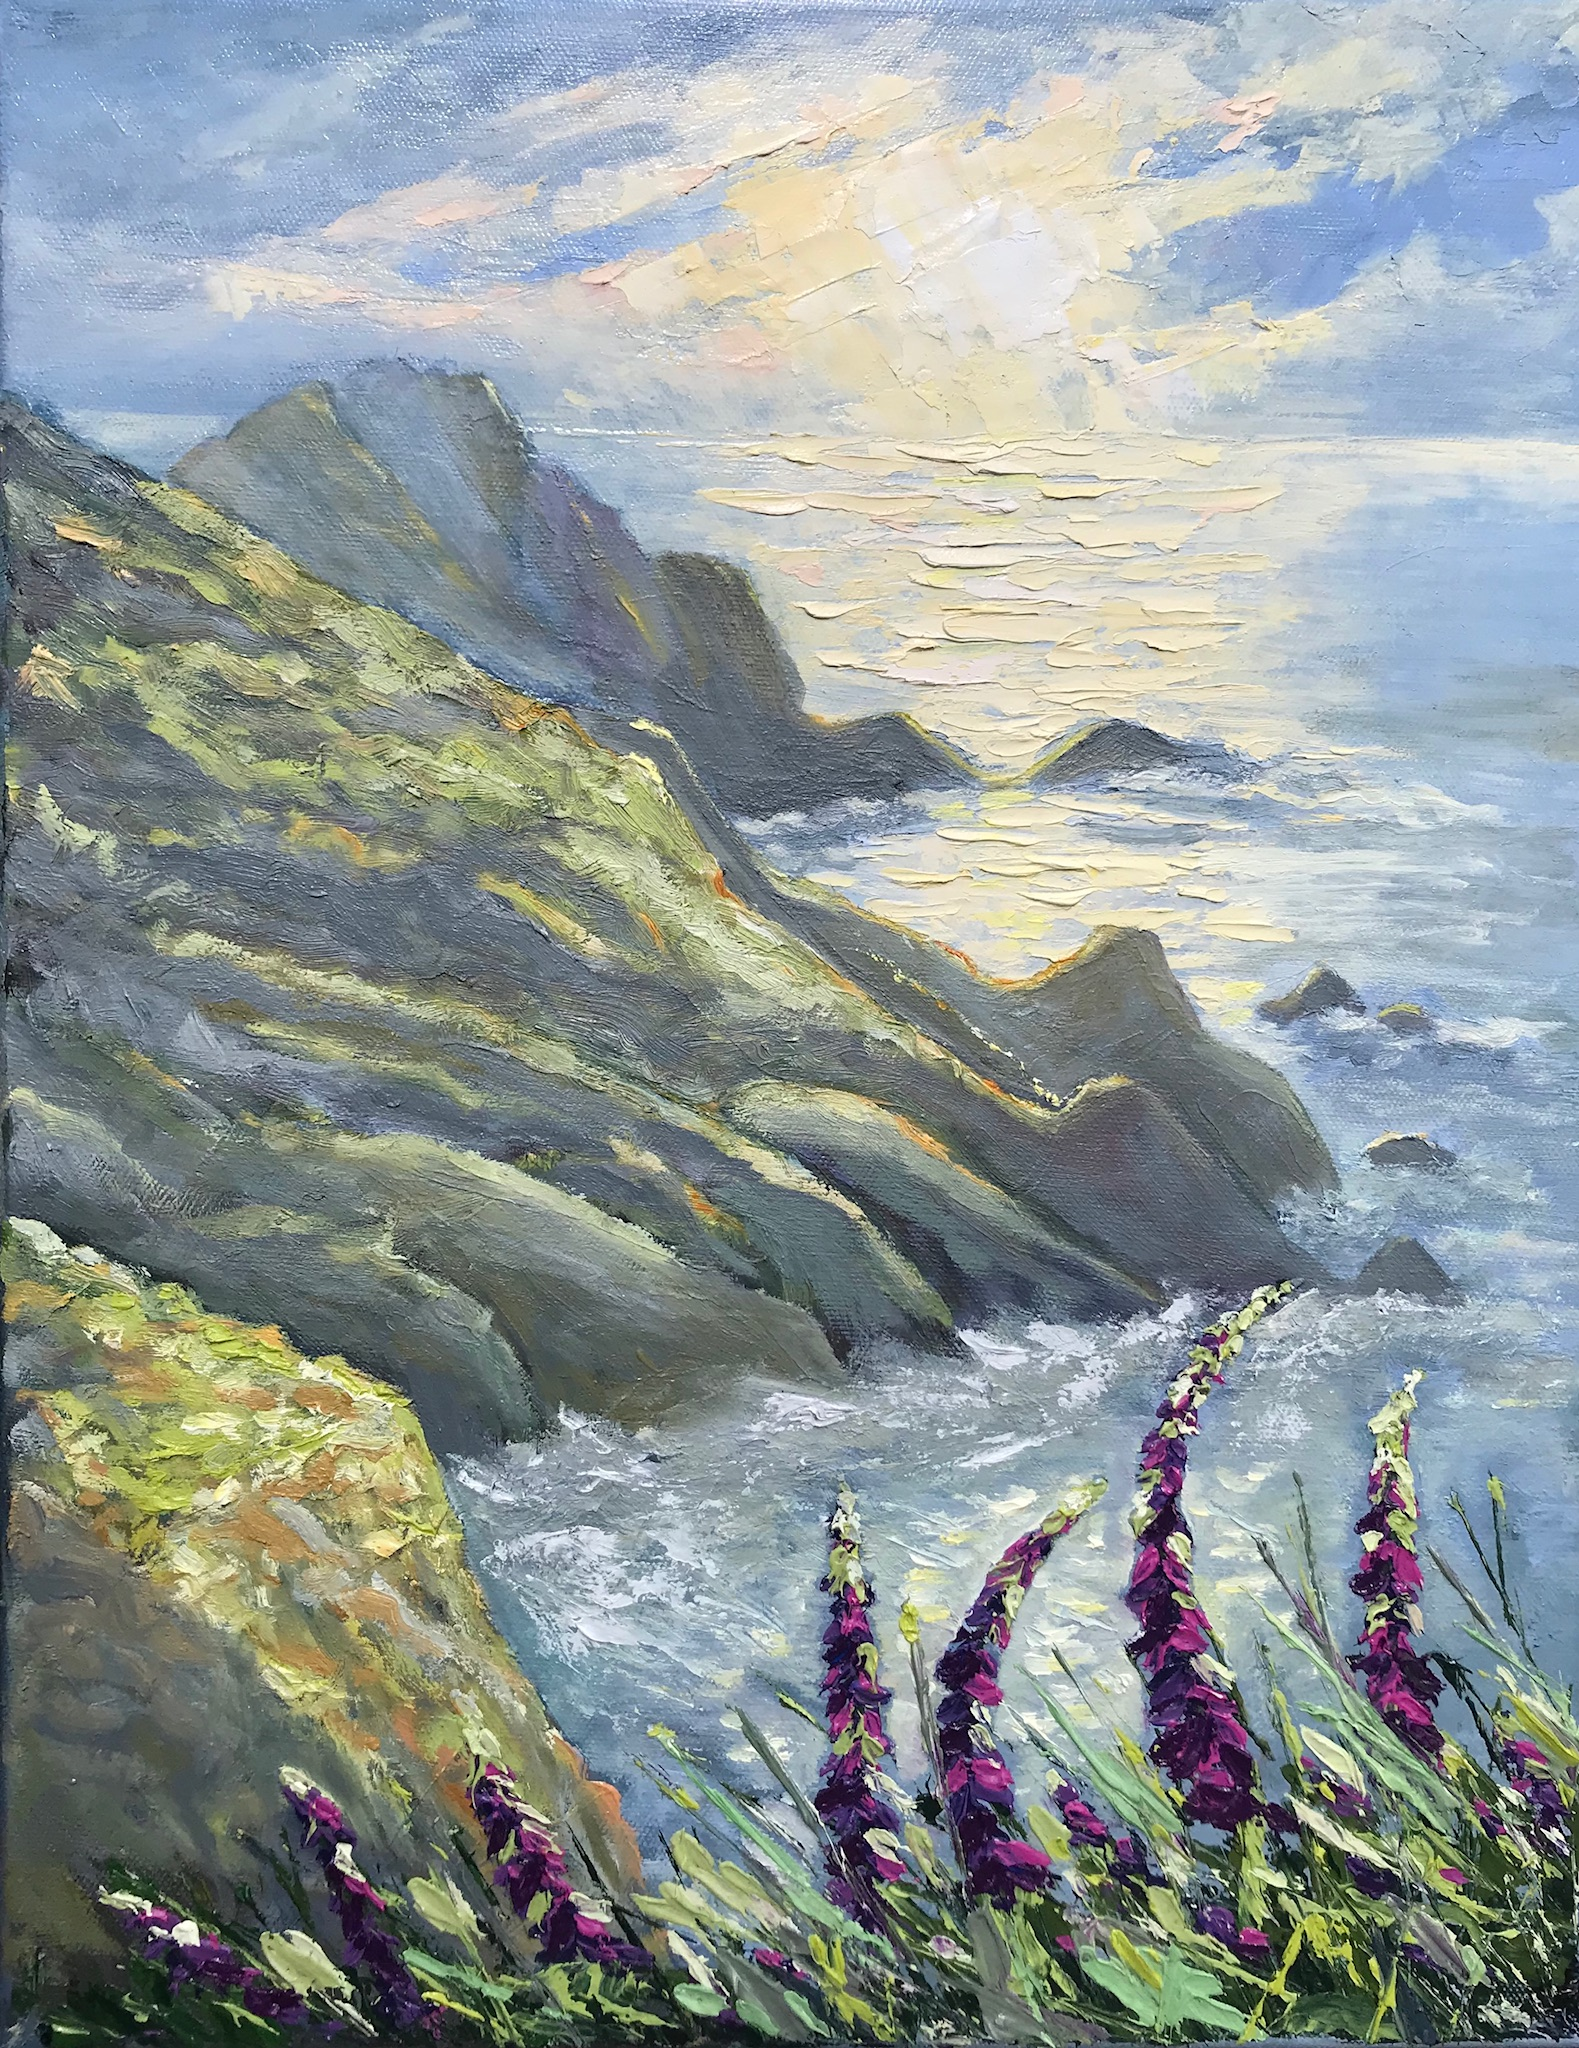 'Sunlight Over the Cliffs'